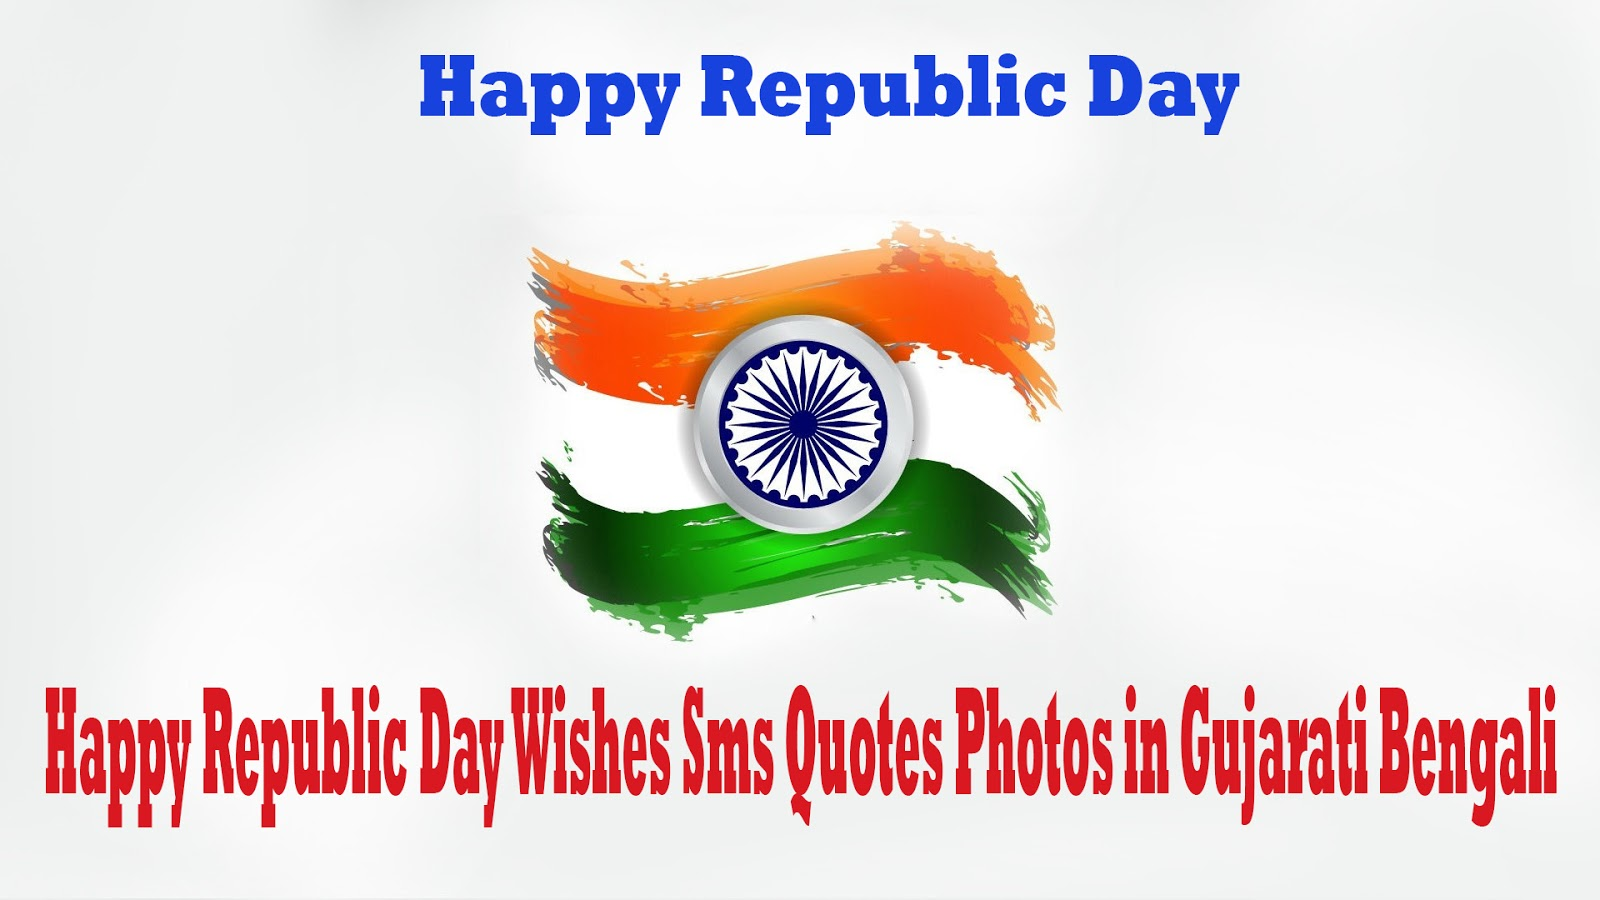 Happy Republic Day Wishes Sms Quotes Photos in Gujarati Bengali